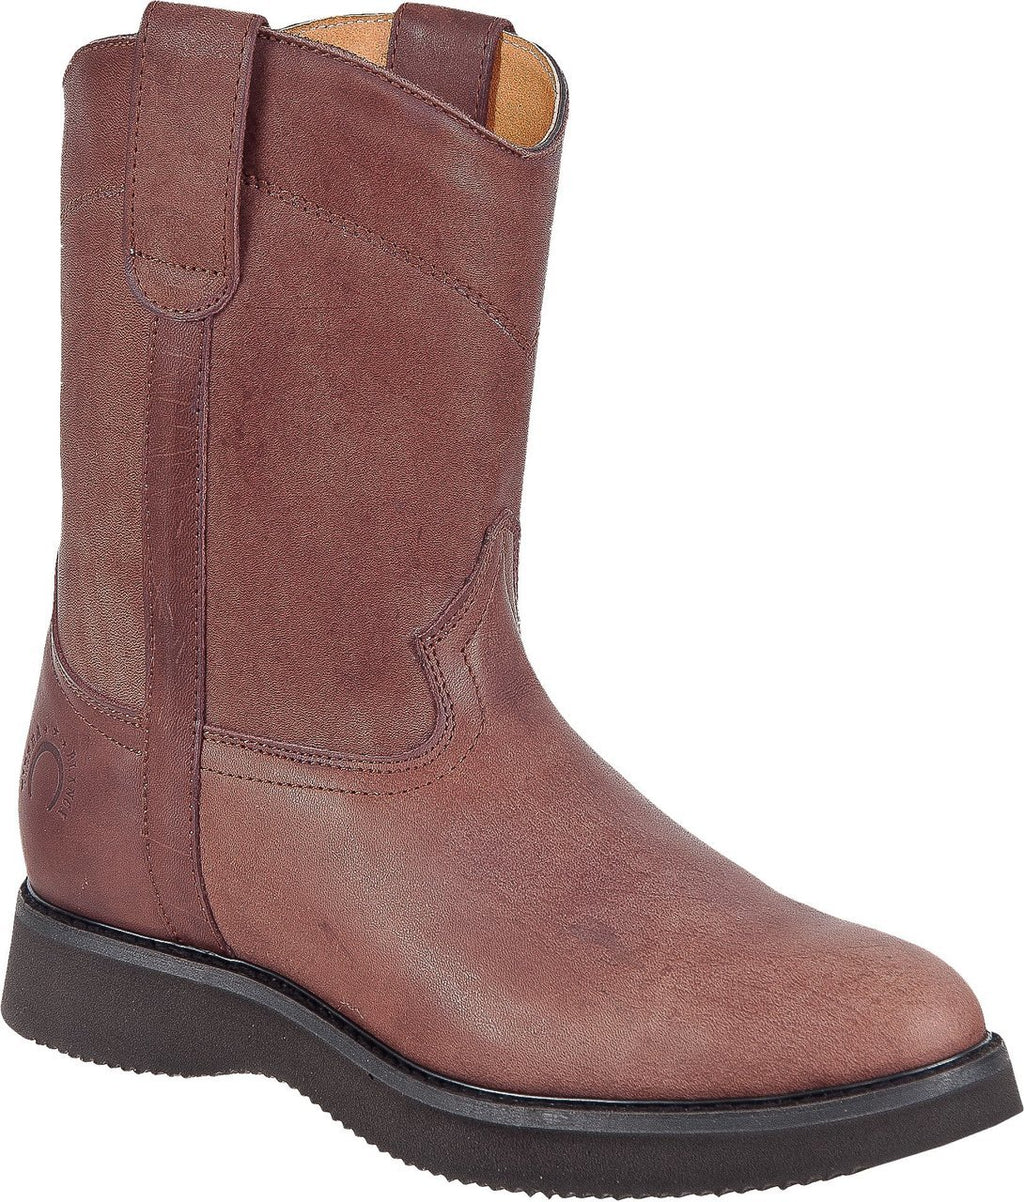 "TIERRA BLANCA Men's 10"" Brown Wellington Work Boots"